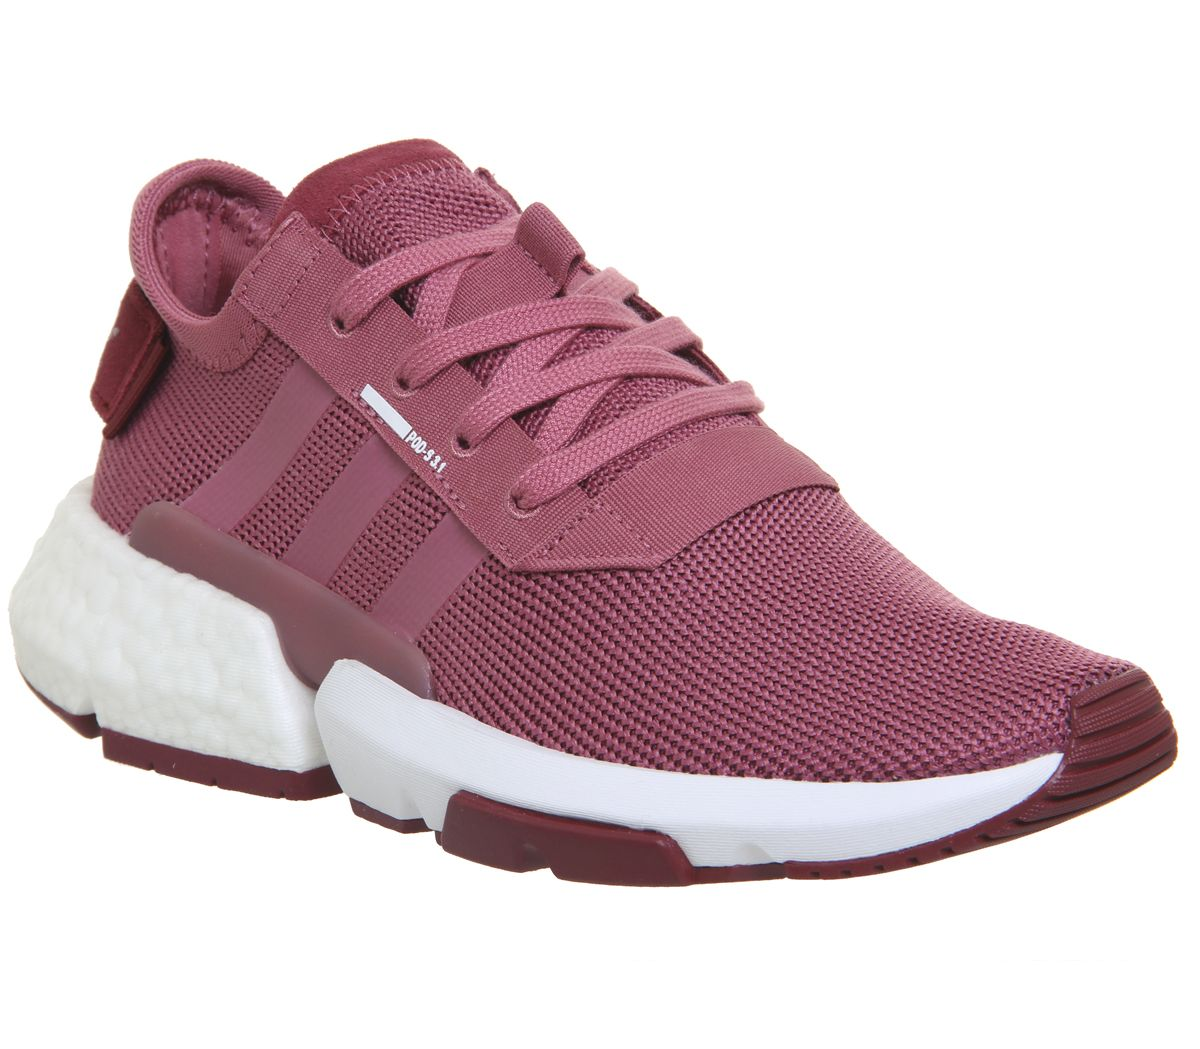 brand new b63b8 4e669 adidas Pod S3.1 Trainers Trace Maroon - Hers trainers